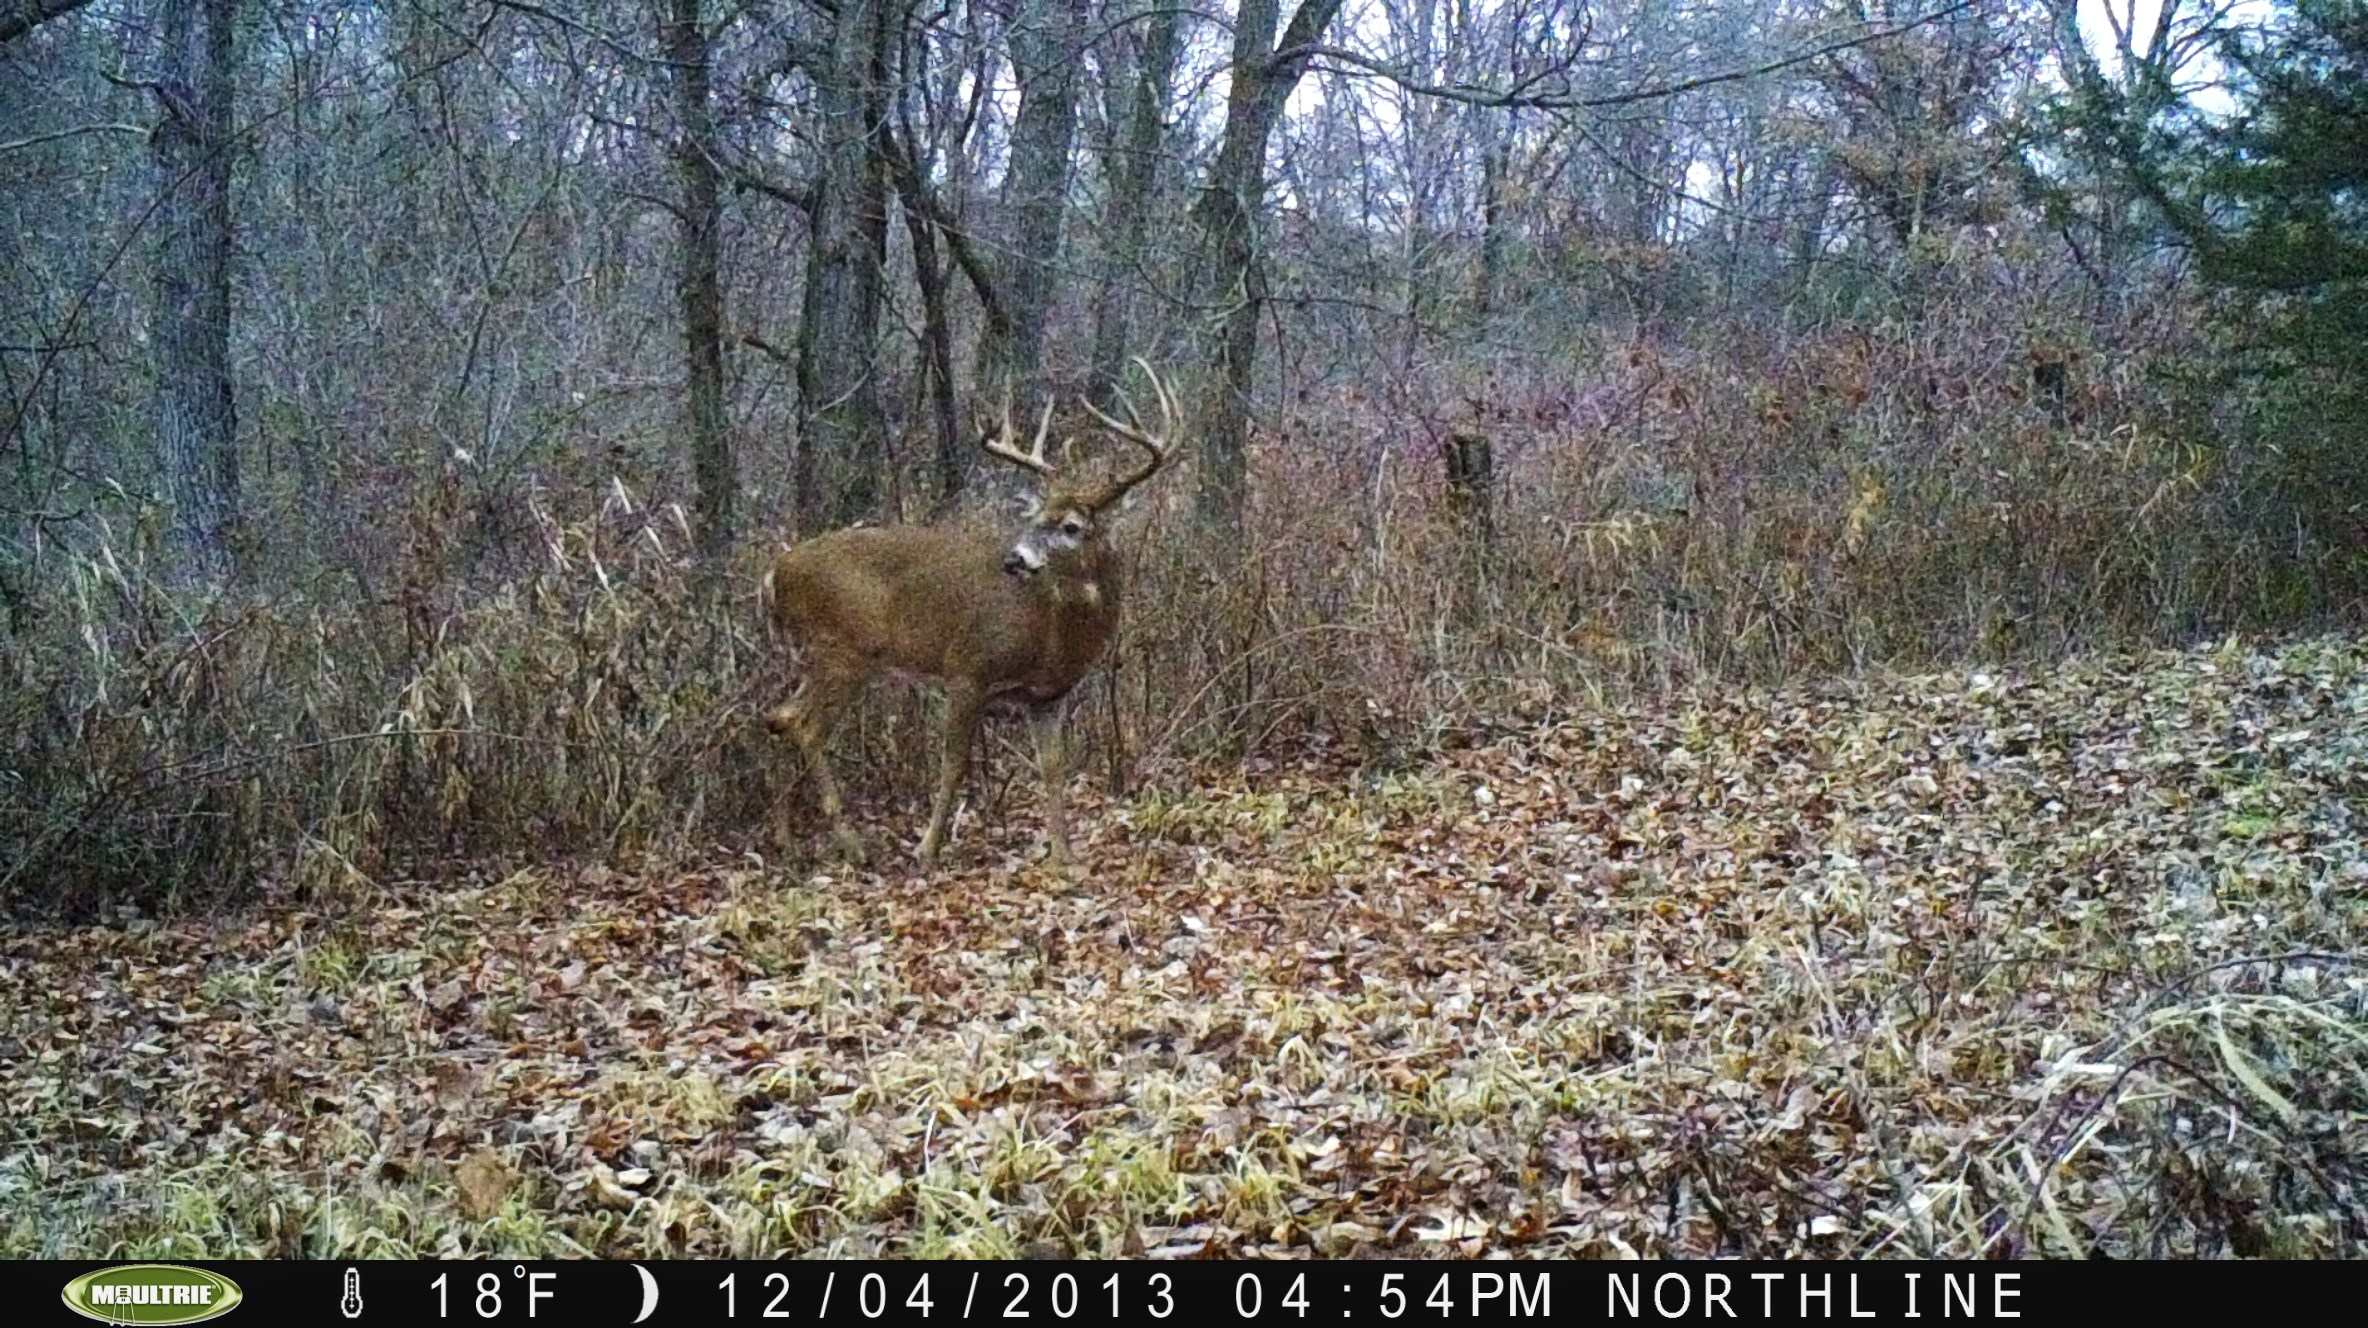 This nice buck showed up late this year.  No doubt, he was probably in the area all fall and I'm just now getting pics of him.  I think based on experience what happens is after the fall harvest, deer seek out the best food sources.  I spend a lot of time and effort making sure my grounds have the best most preferred food sources which is why I bring in deer this time of year.